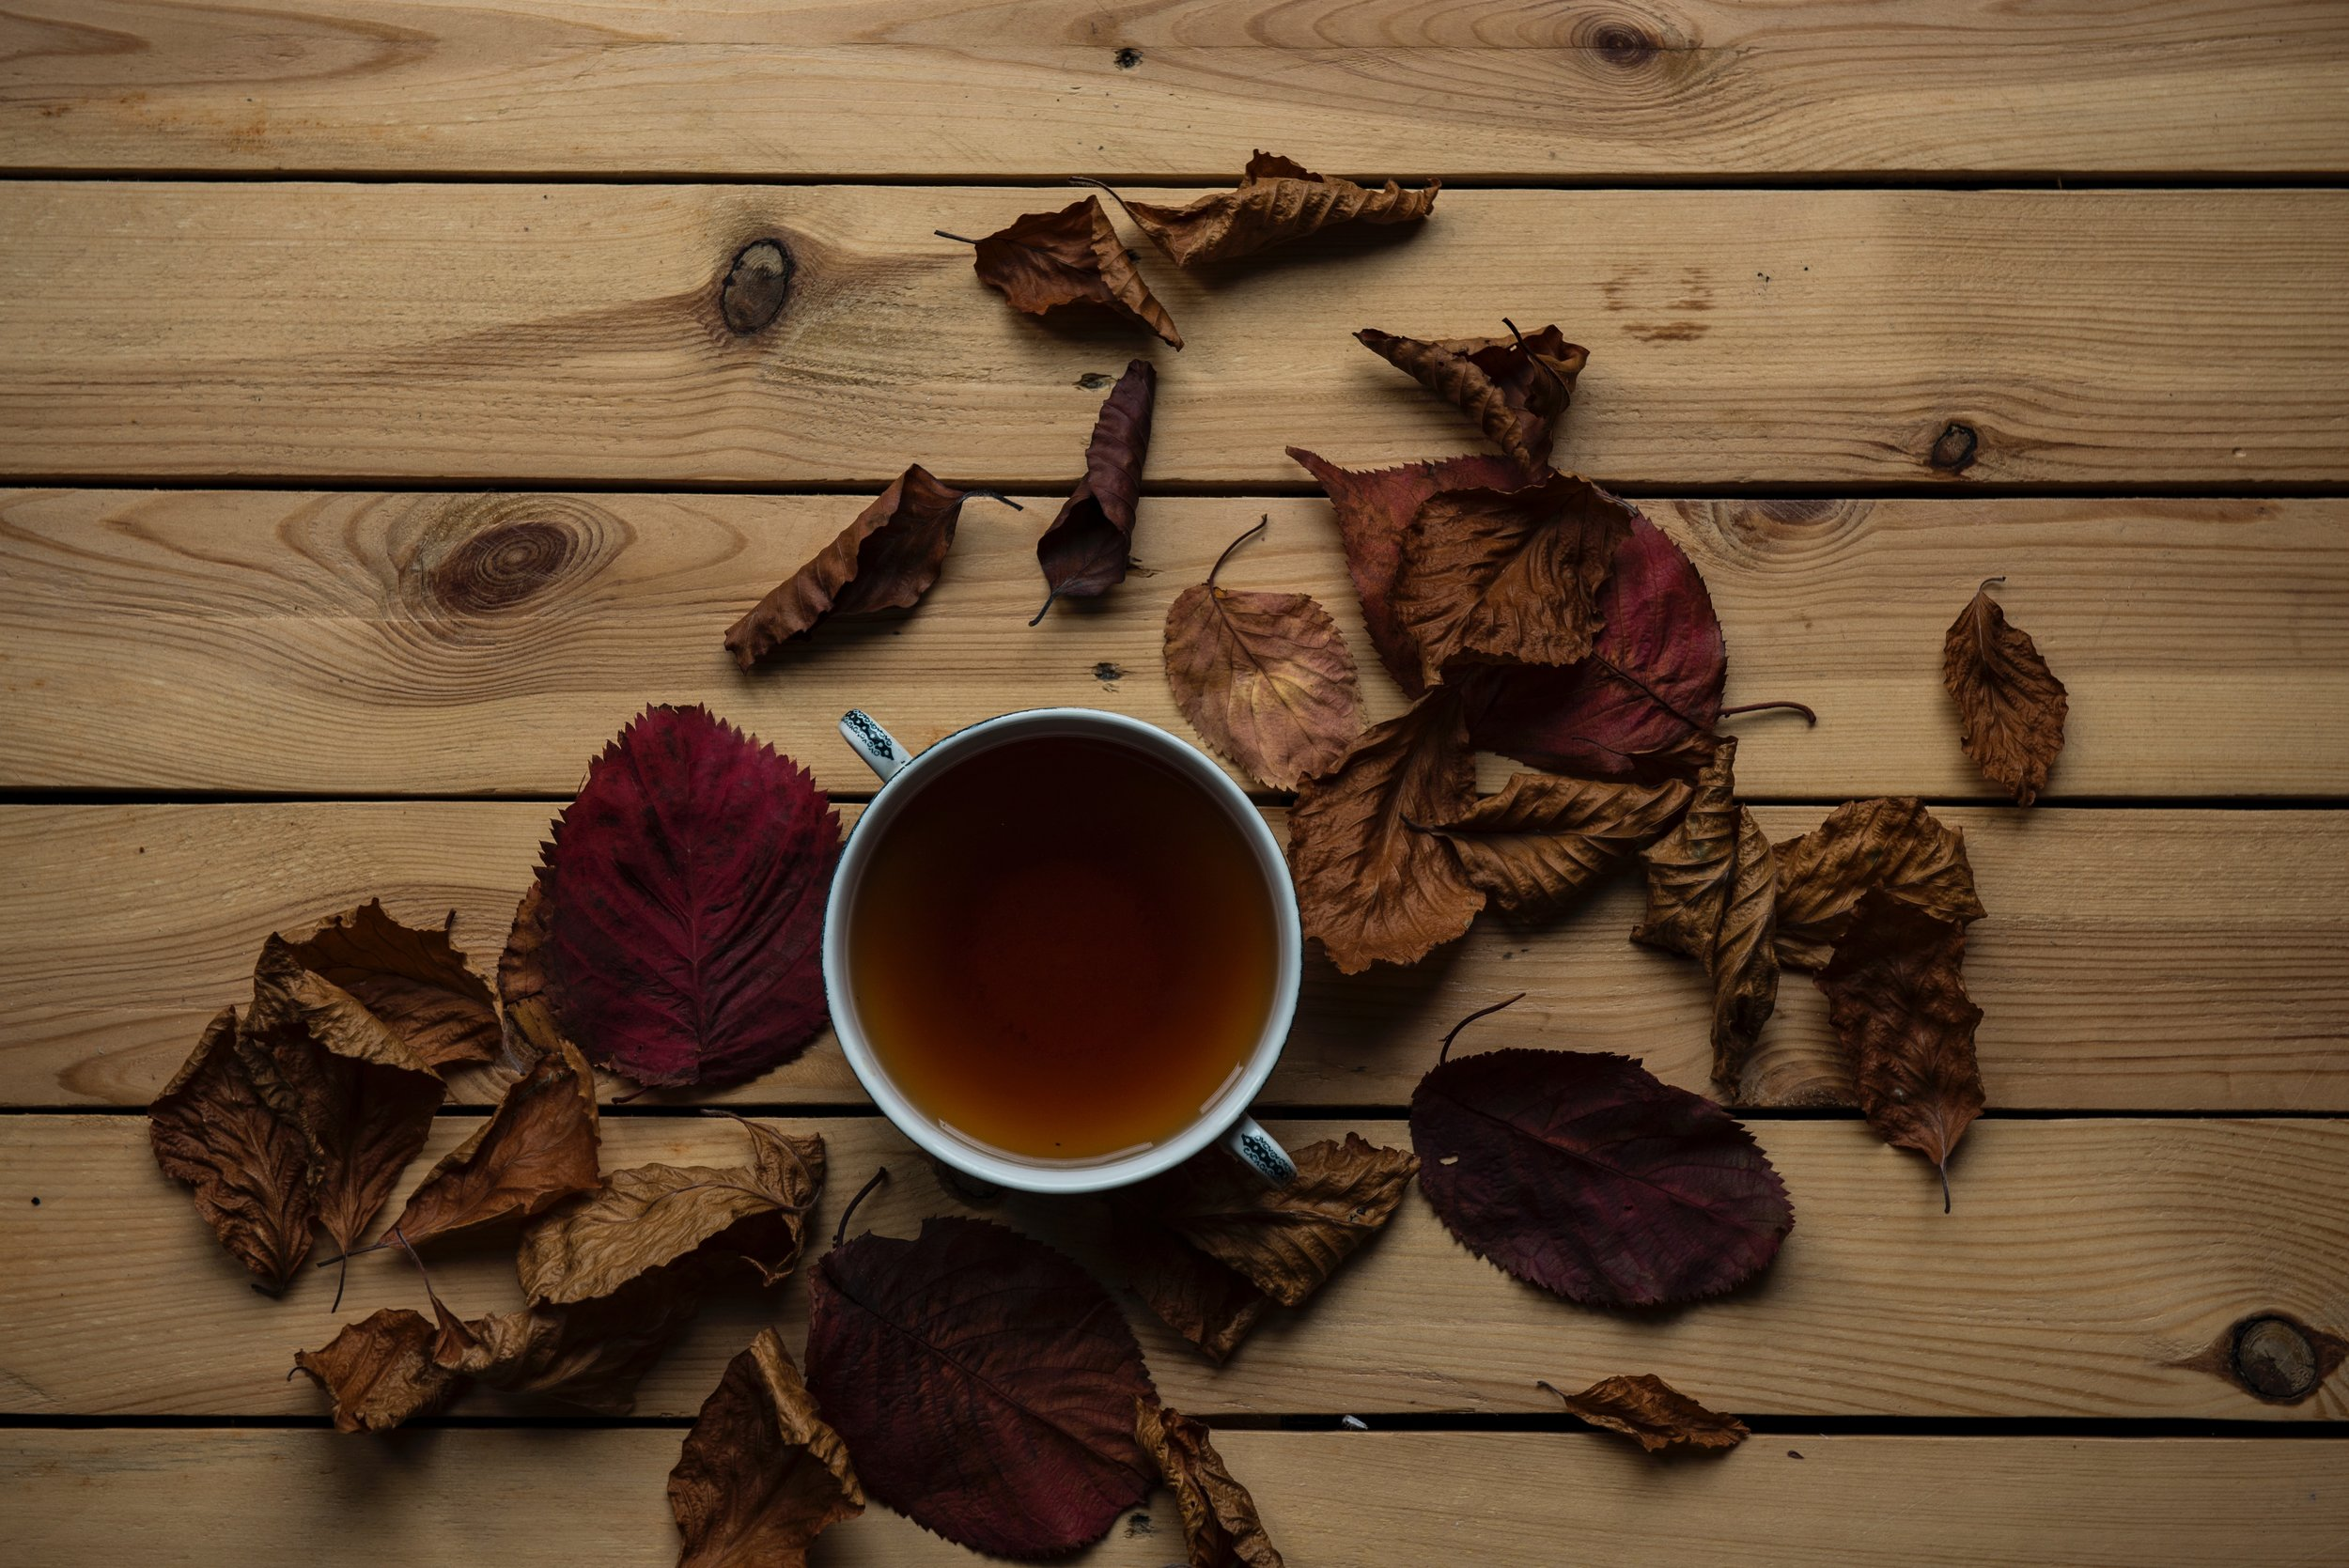 The new range of asha tea - perfect to unwind and free your mind this autumn.